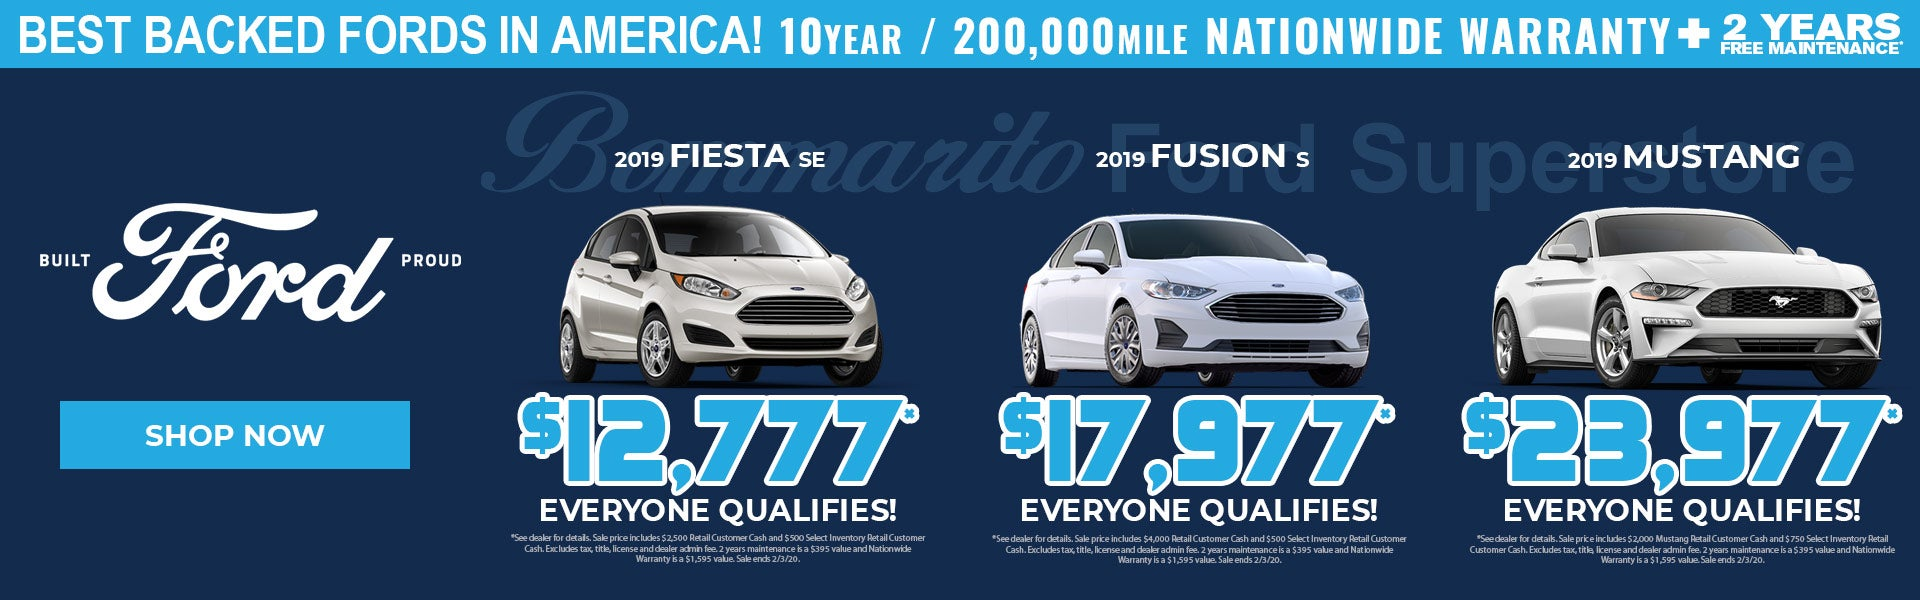 Bommarito Used Cars >> Bommarito Ford Hazelwood Mo New Used Ford Dealership